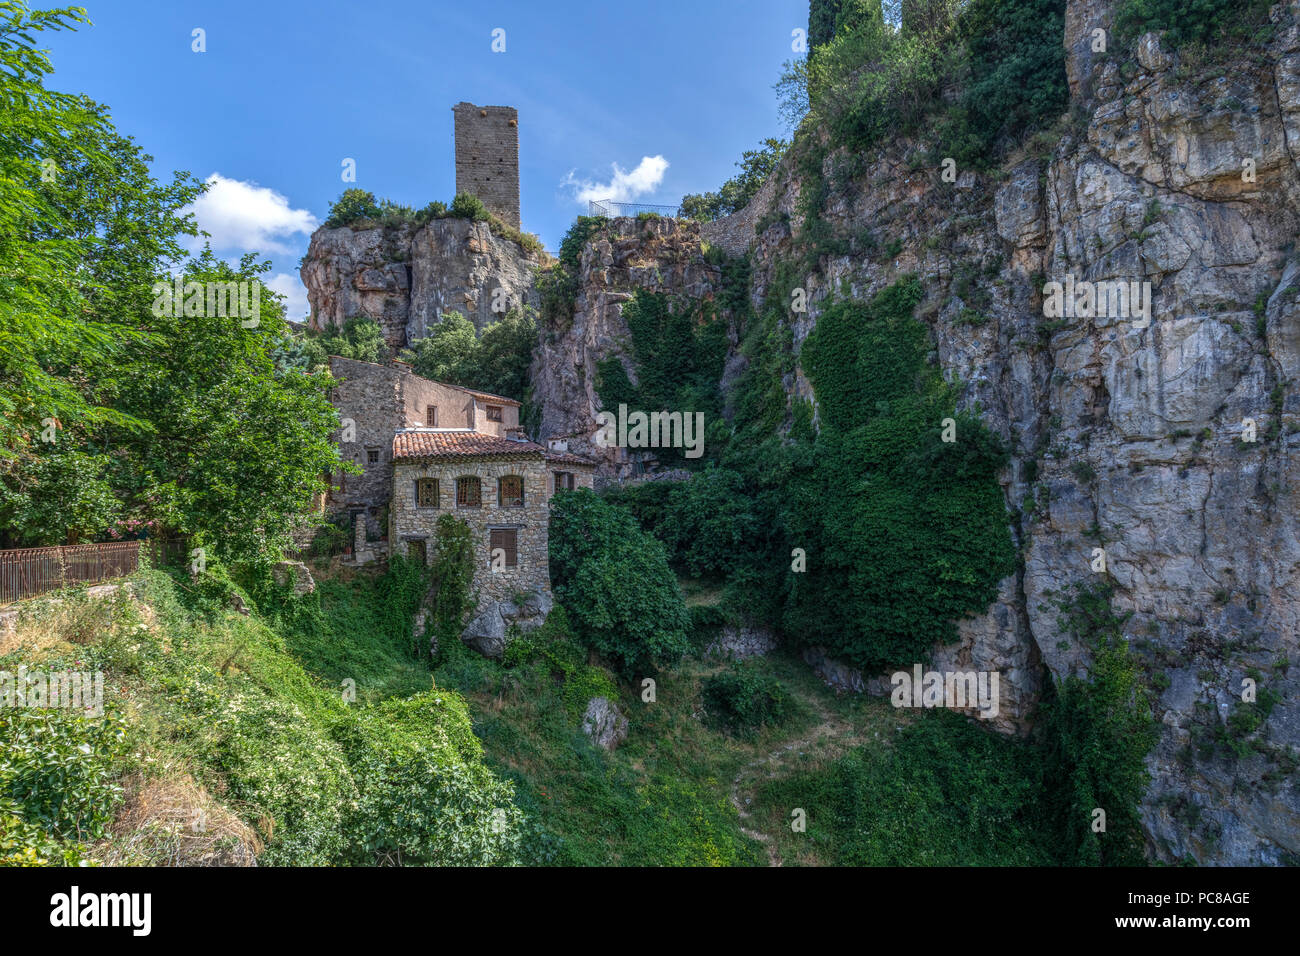 Chateaudouble, Var, Provence, France - Stock Image